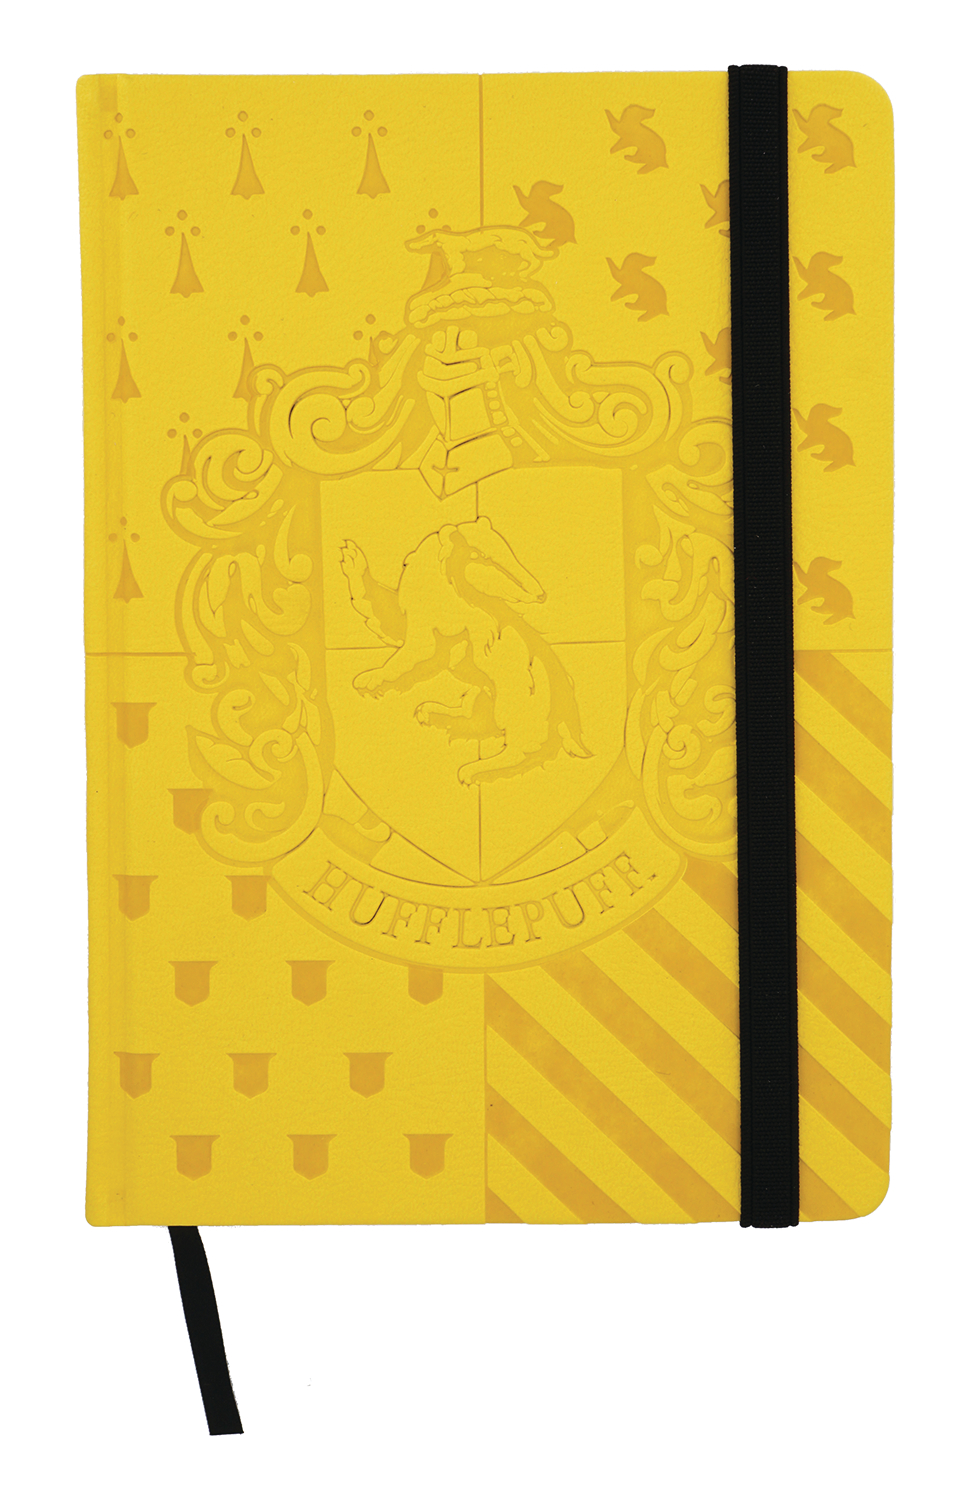 HARRY POTTER HUFFLEPUFF CREST JOURNAL